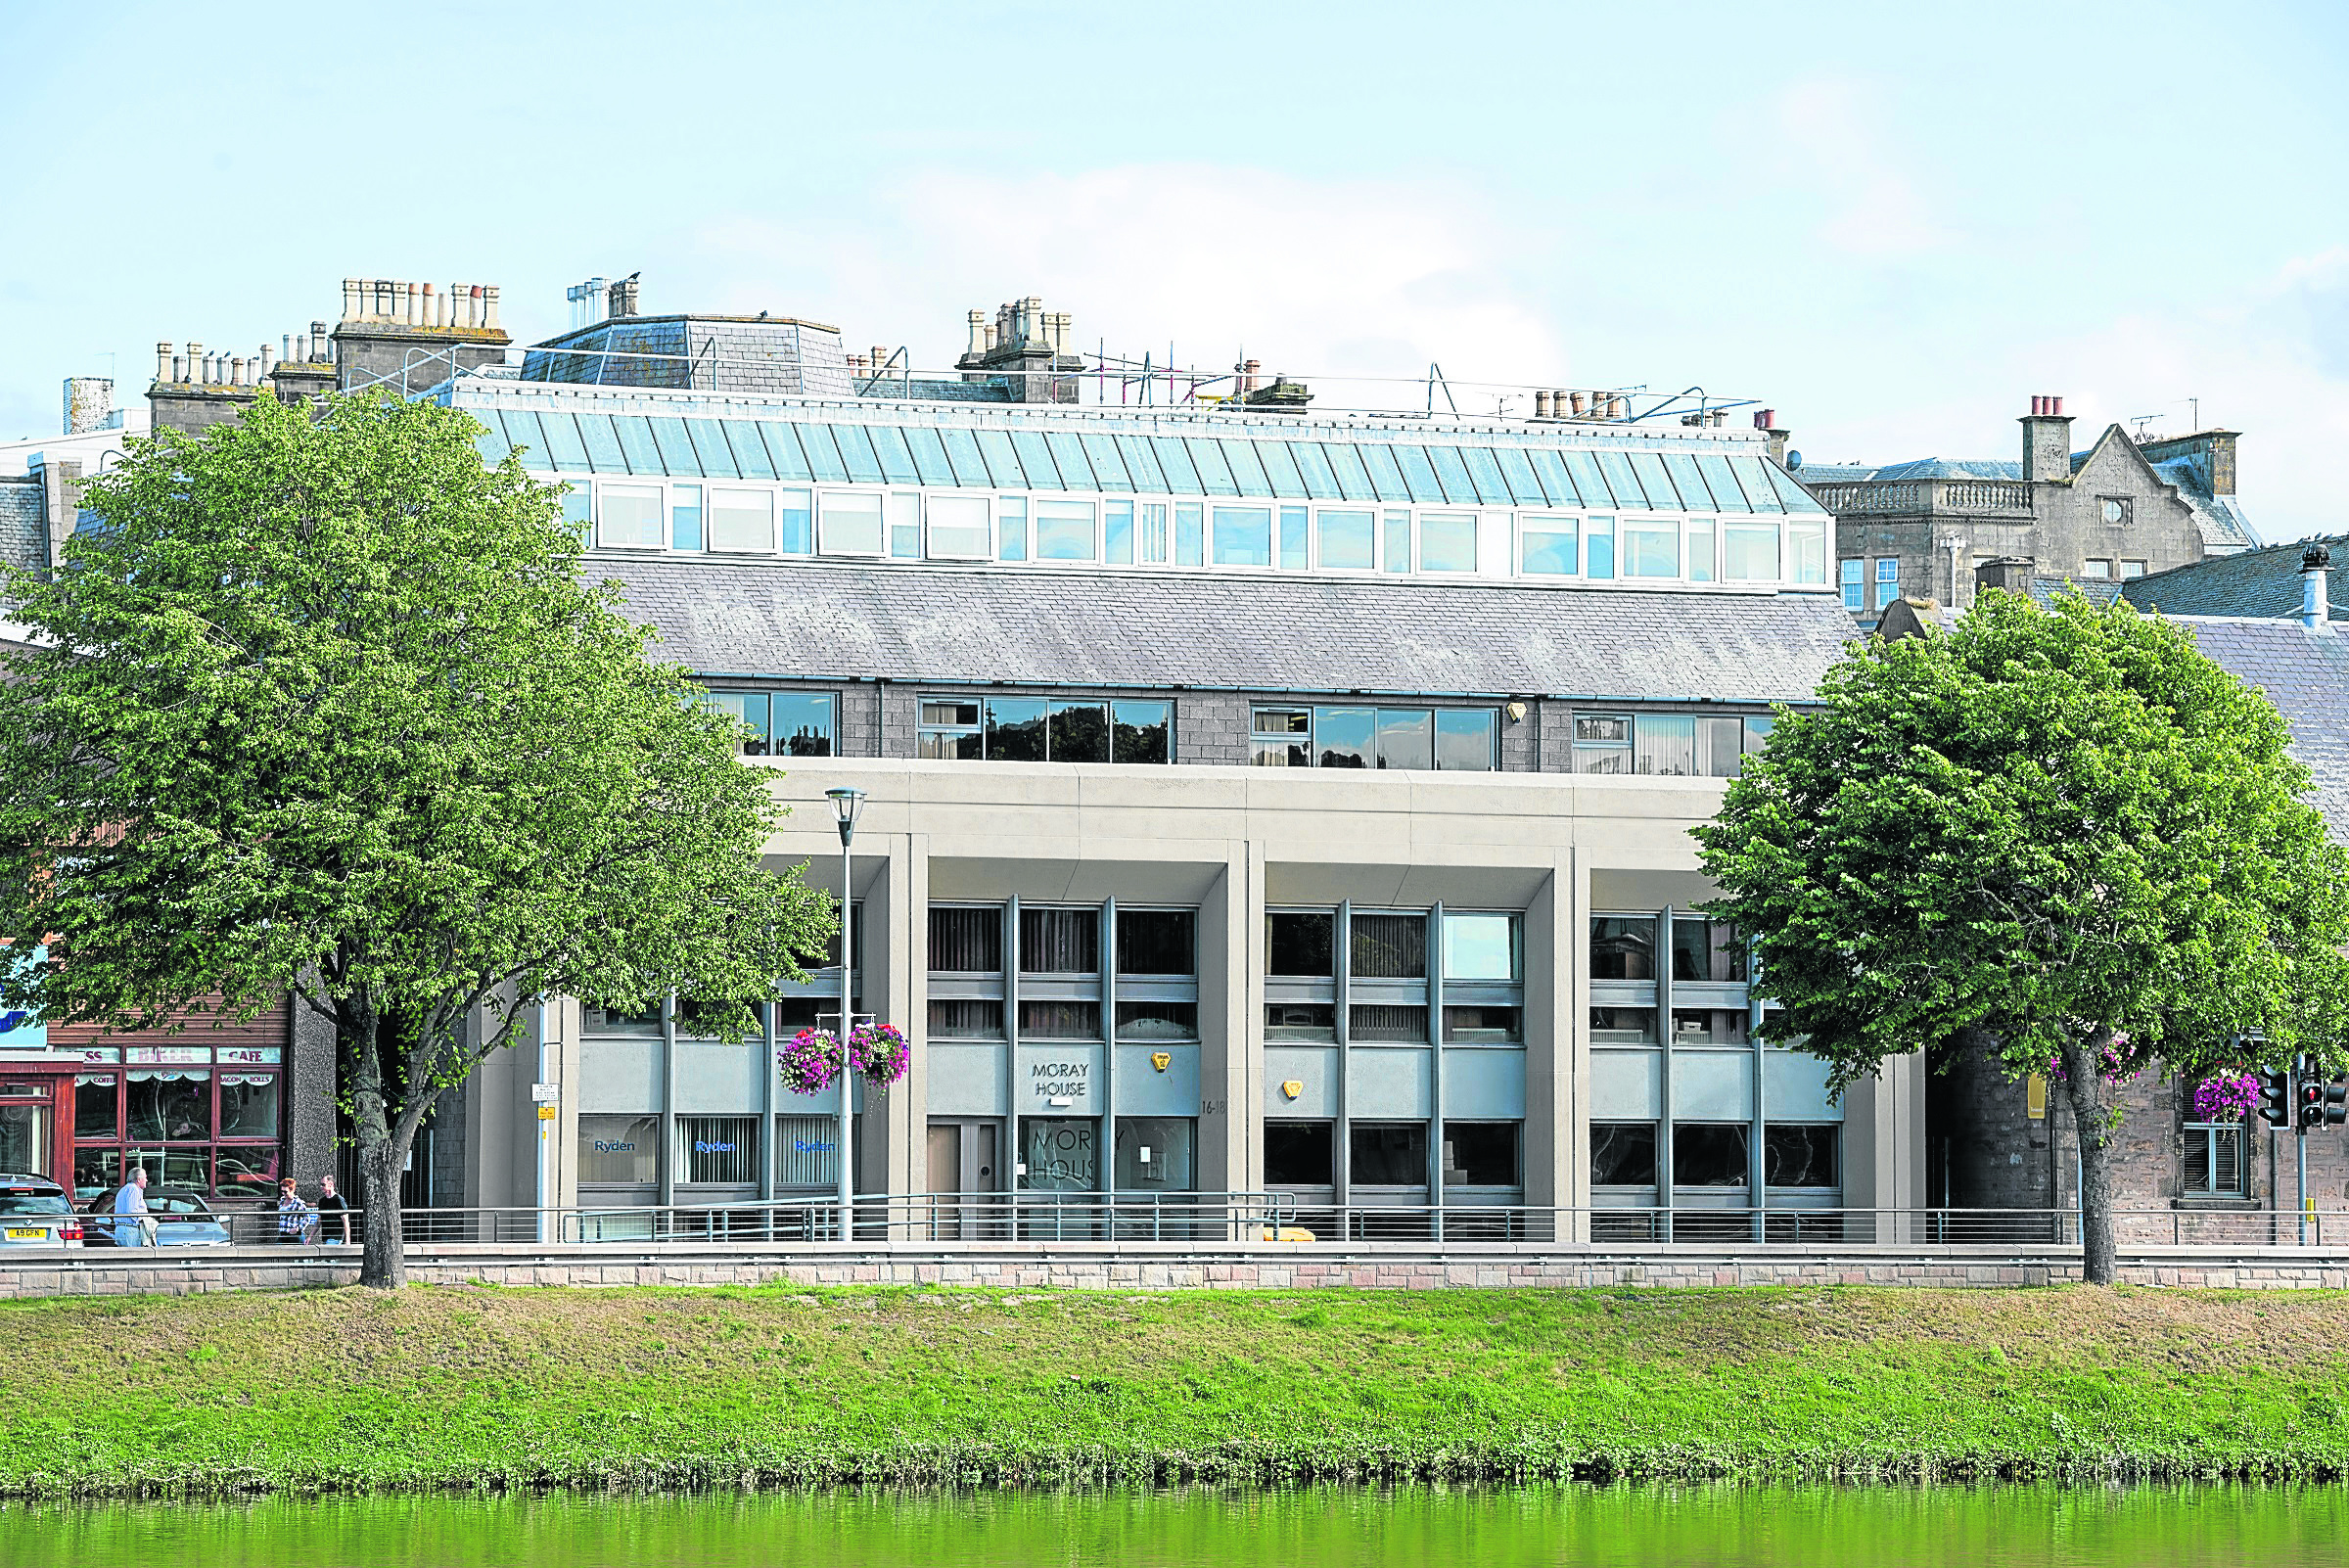 Moray House in Inverness